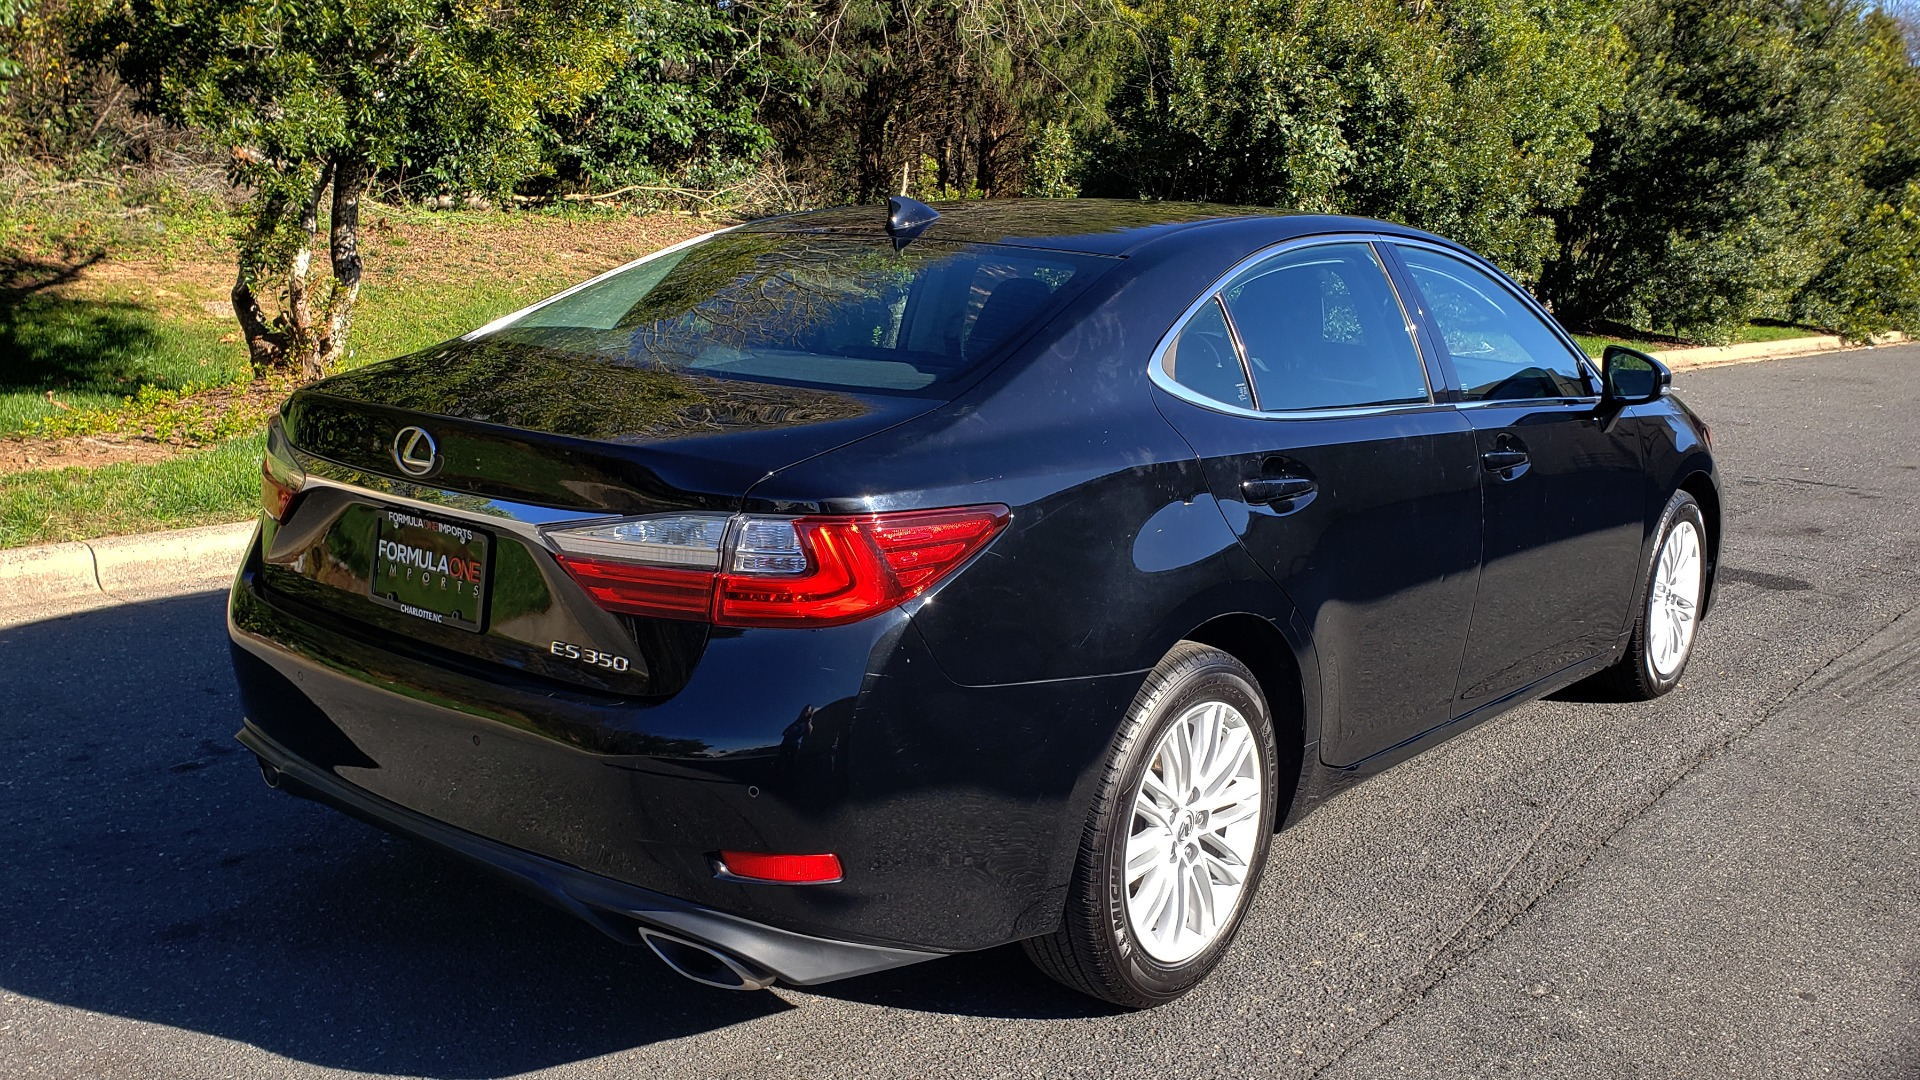 Used 2017 Lexus ES 350 PREMIUM / NAV / SUNROOF / BSM / VENT STS / REARVIEW for sale $24,795 at Formula Imports in Charlotte NC 28227 6